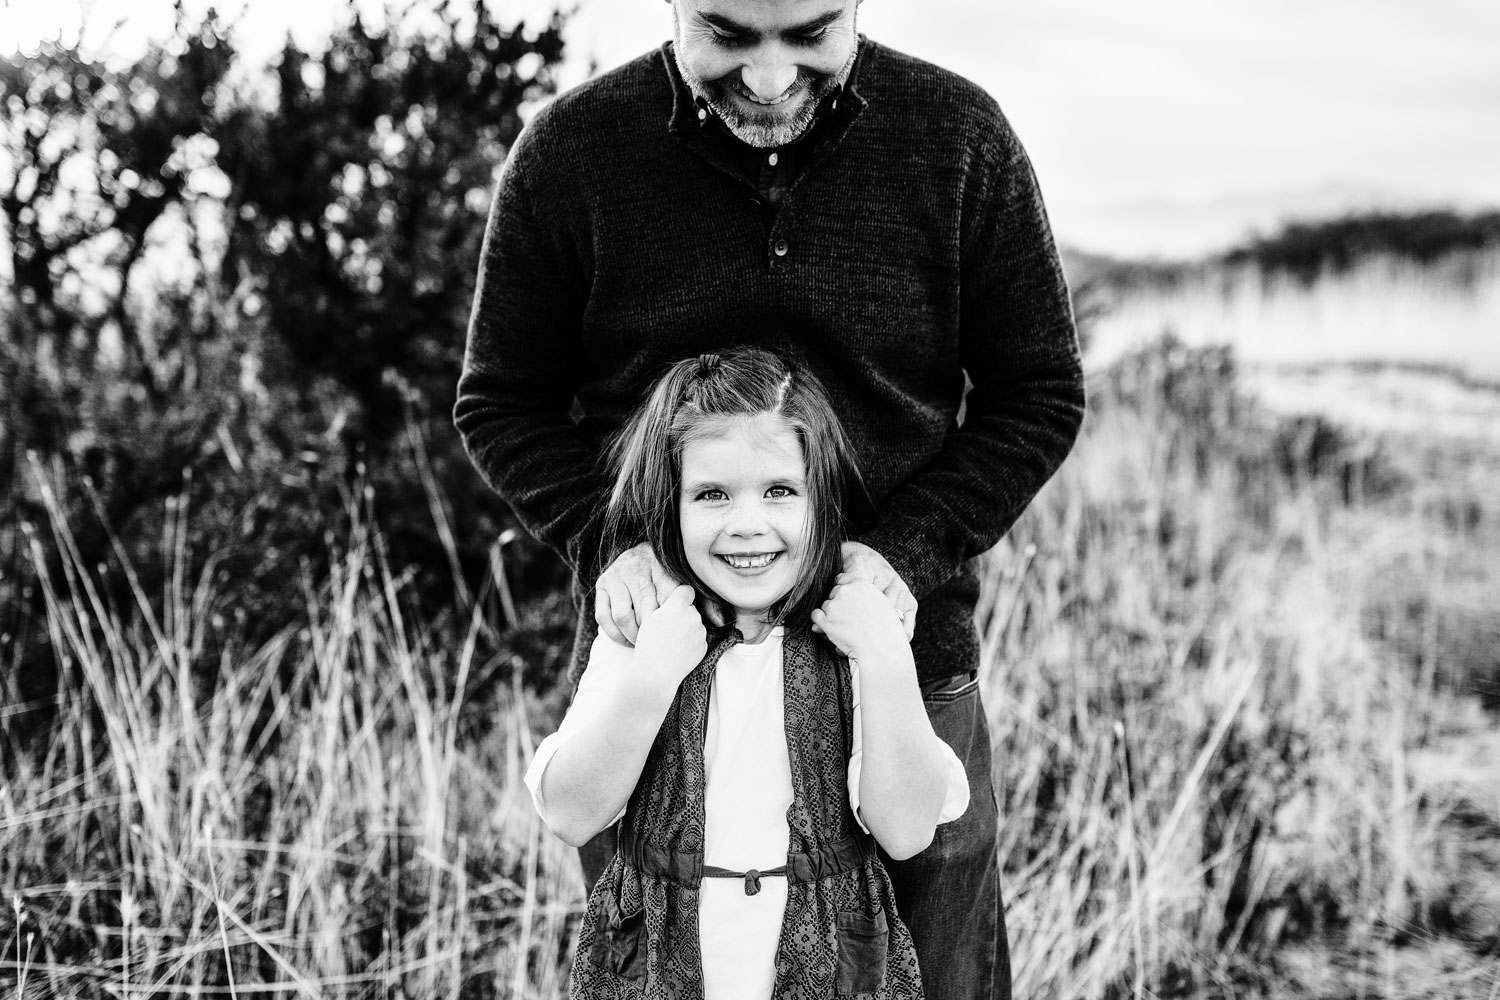 A black-and-white photo shows a timeless capture of a father and daughter, taken by Amy Wright Photography, based out of Roseville, California.